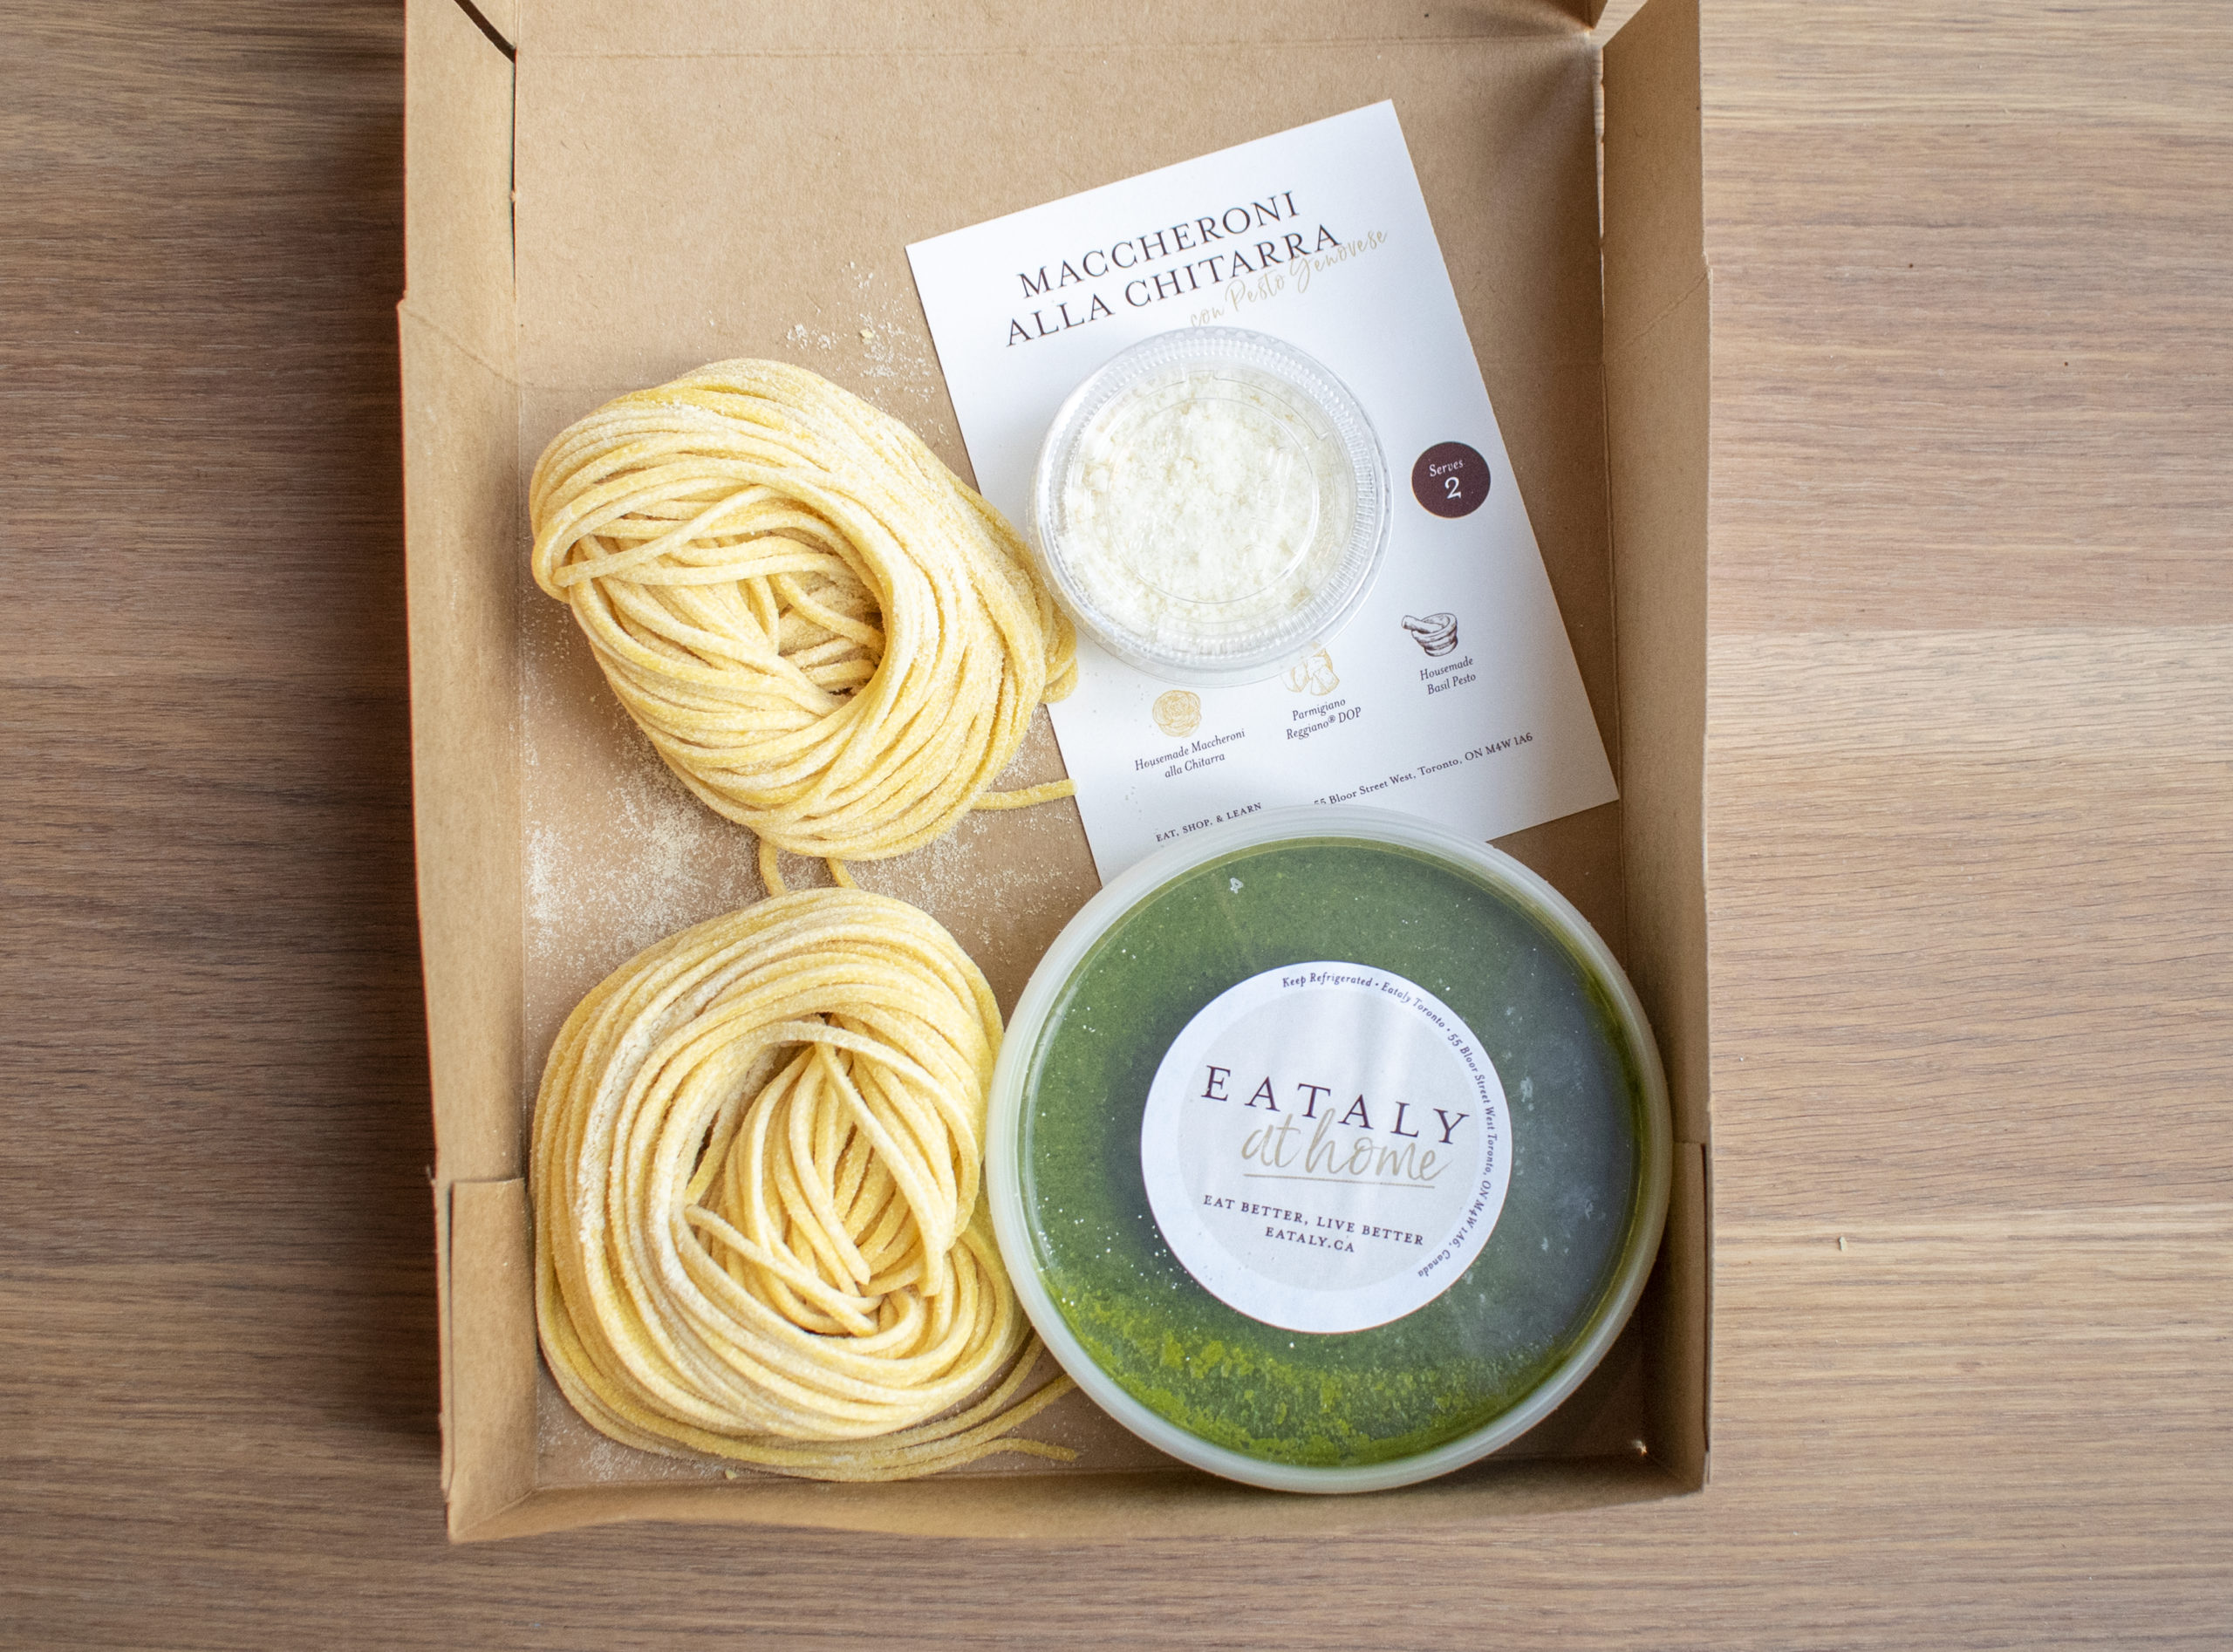 pasta with pesto kit